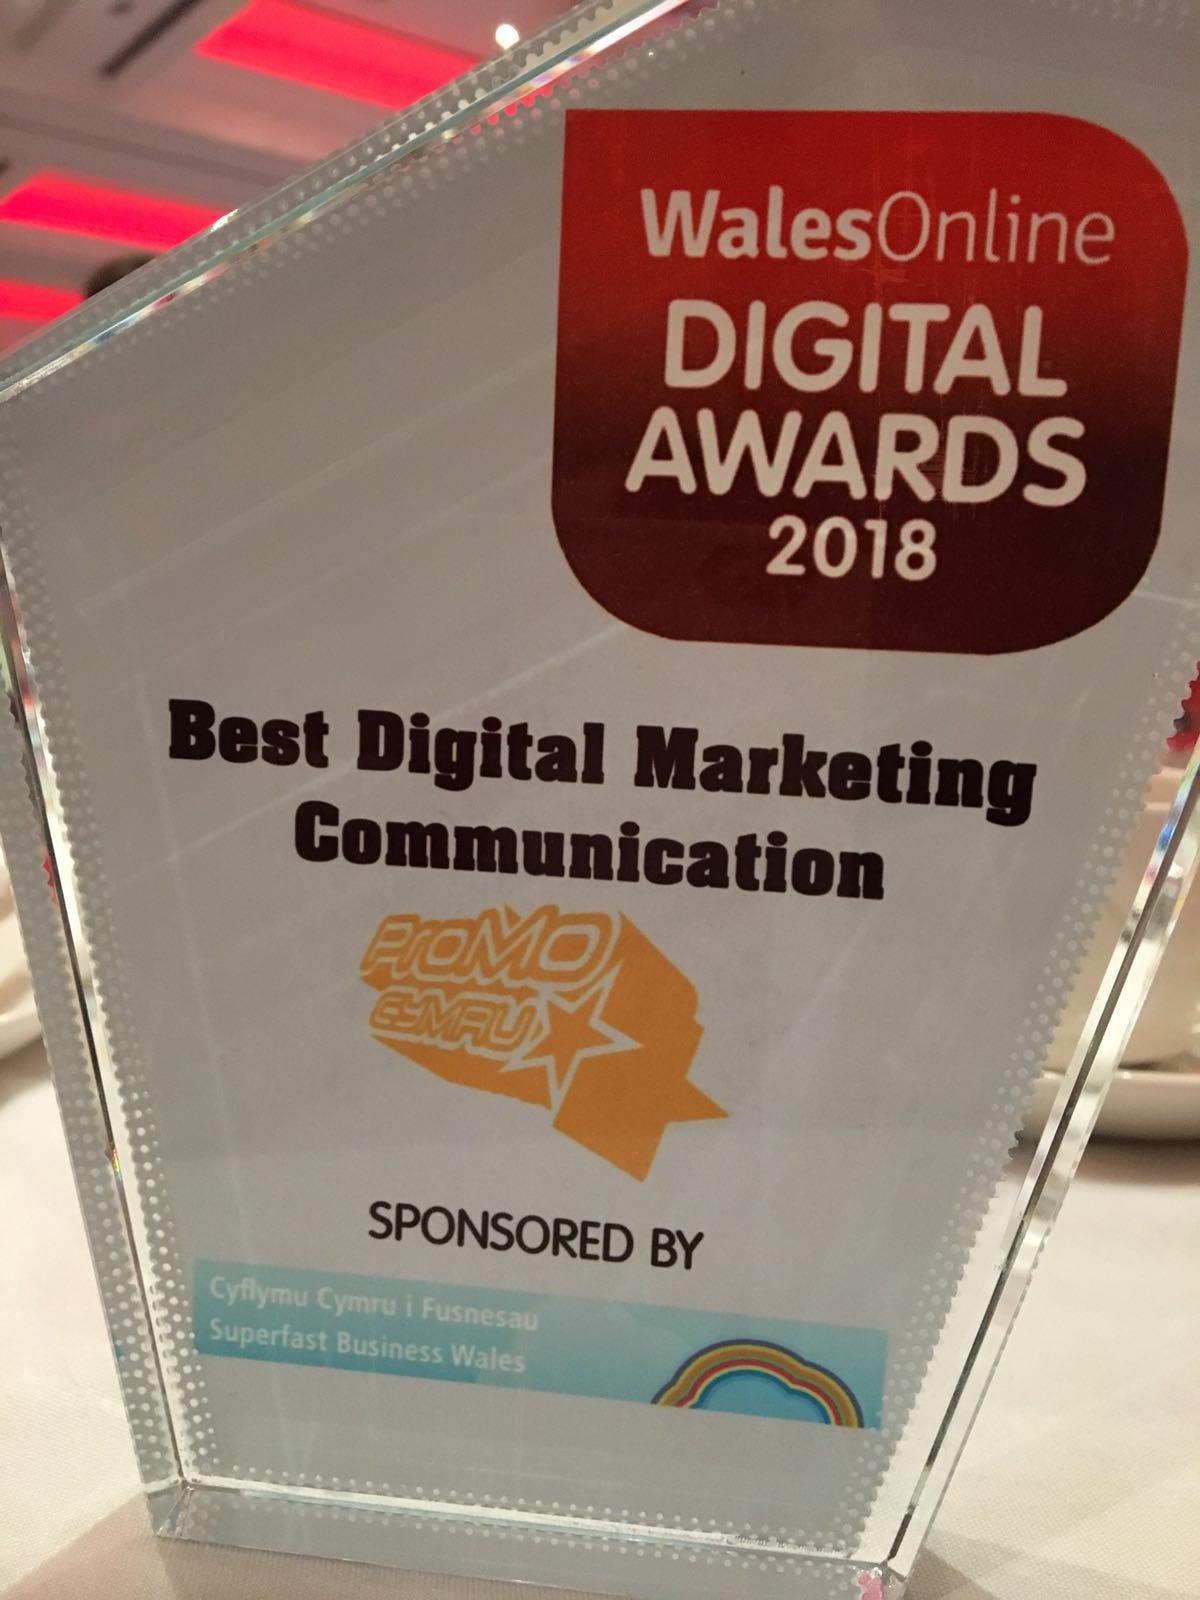 Best Digital Marketing Communication Award